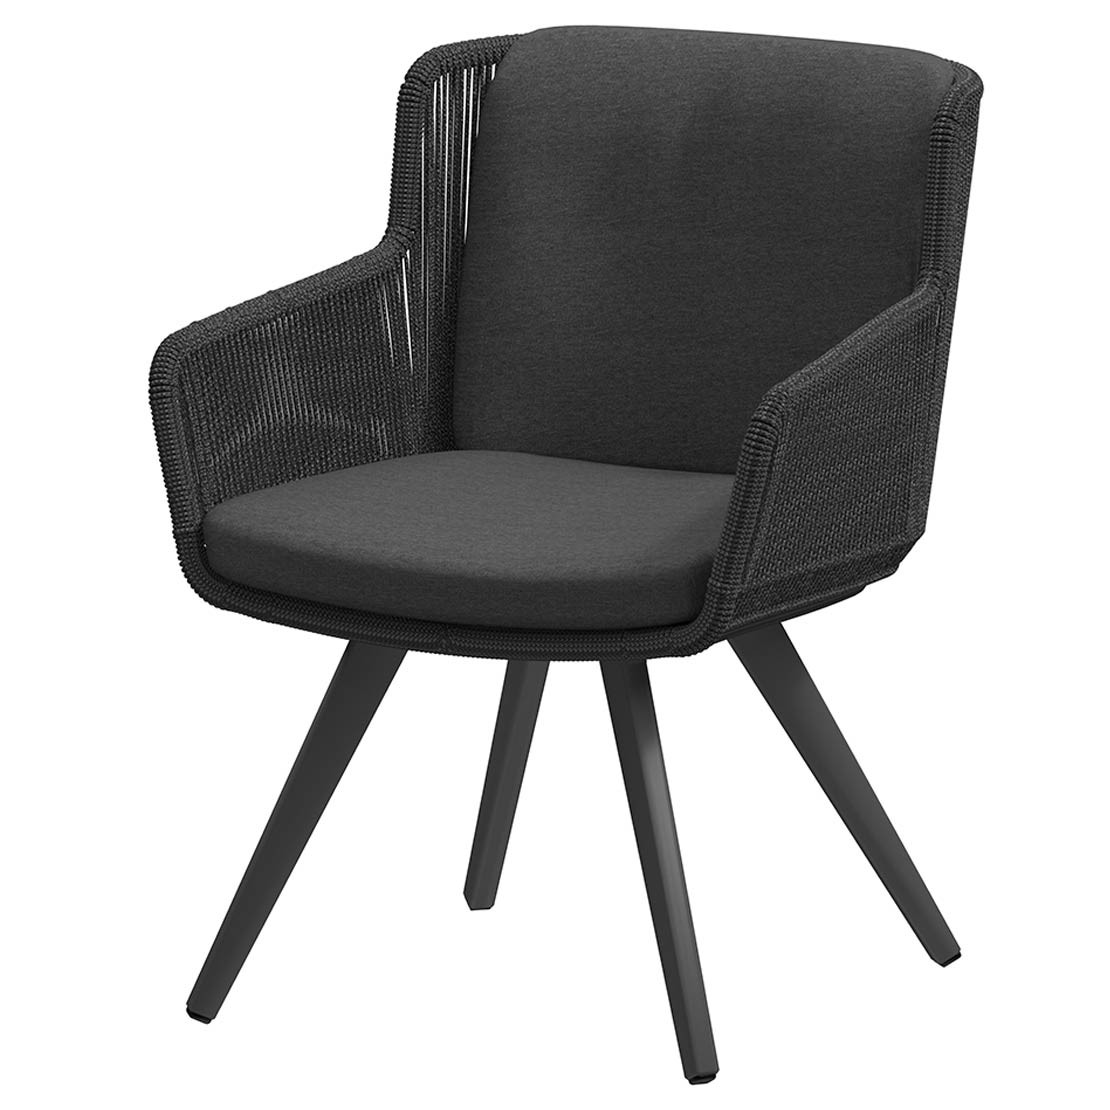 Flores dining chair Alu legs Anthracite with 2 cushions